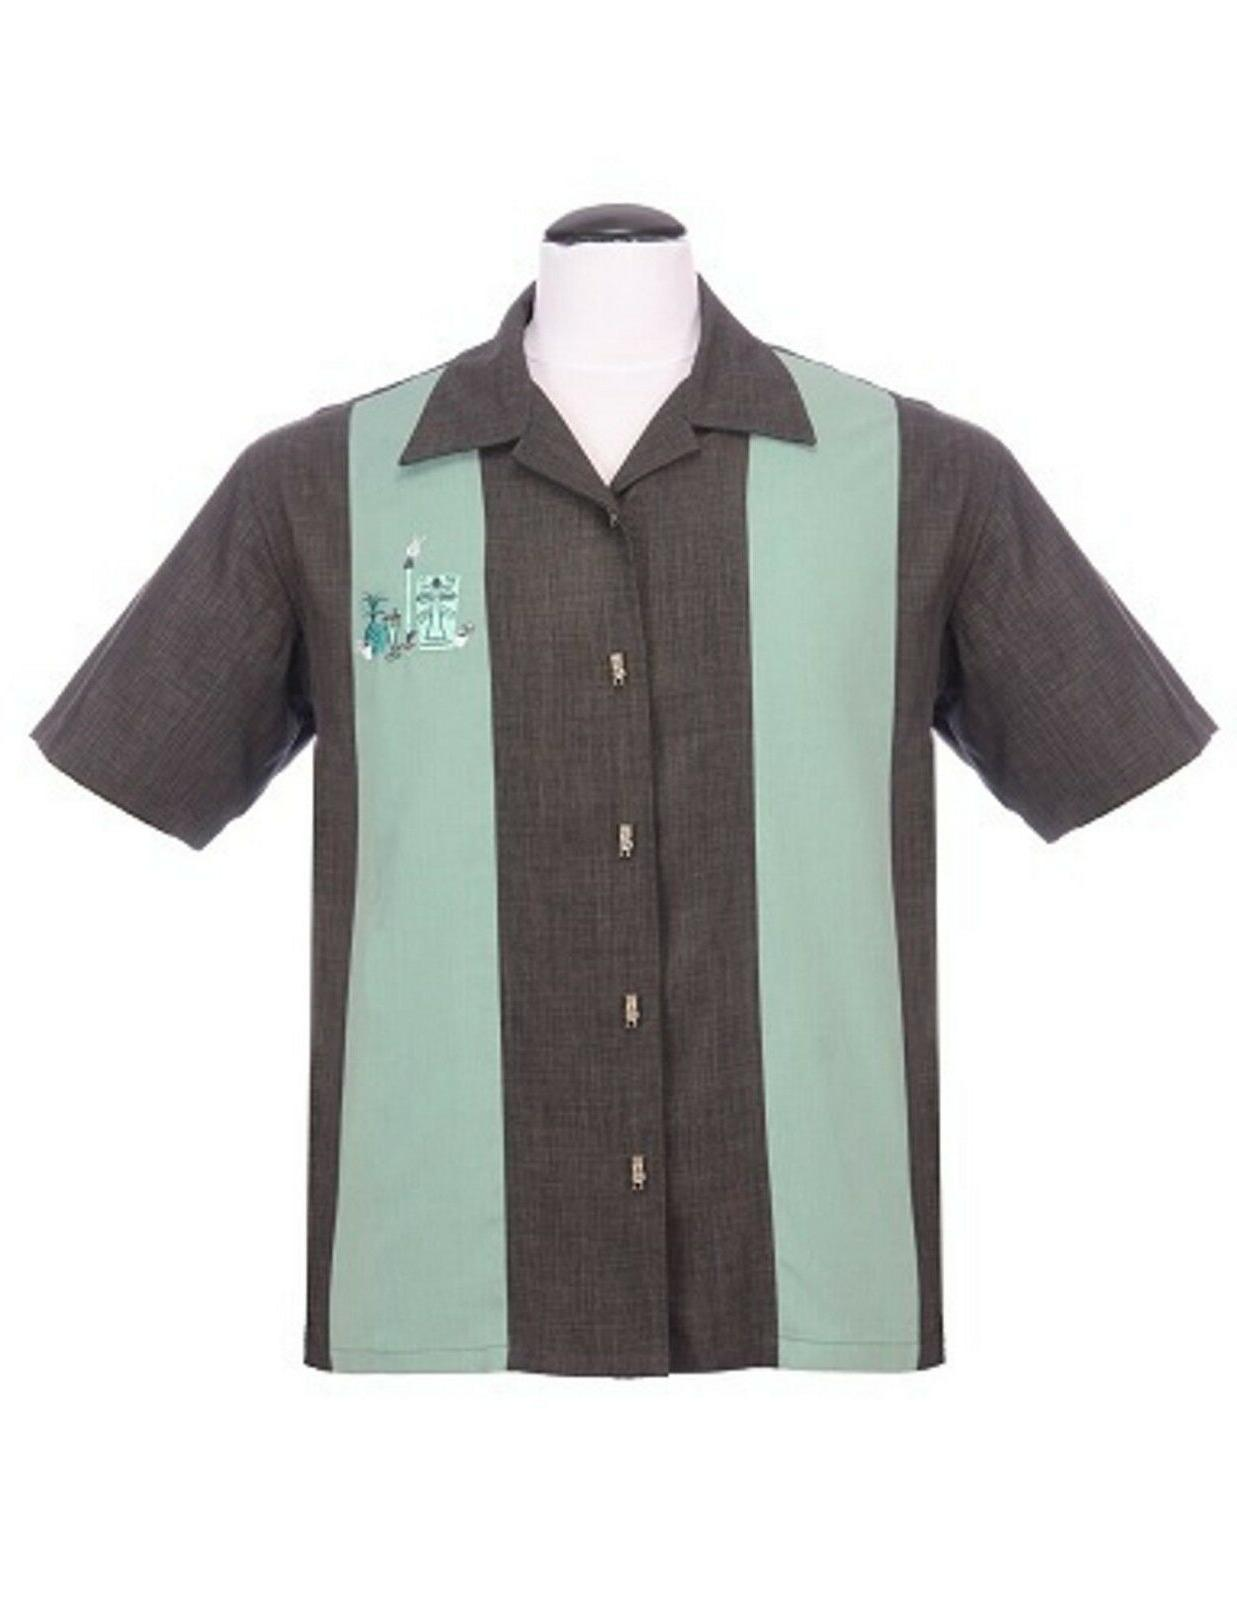 Steady Clothing Tiki Button's Up Charcoal Sage Green Men's B